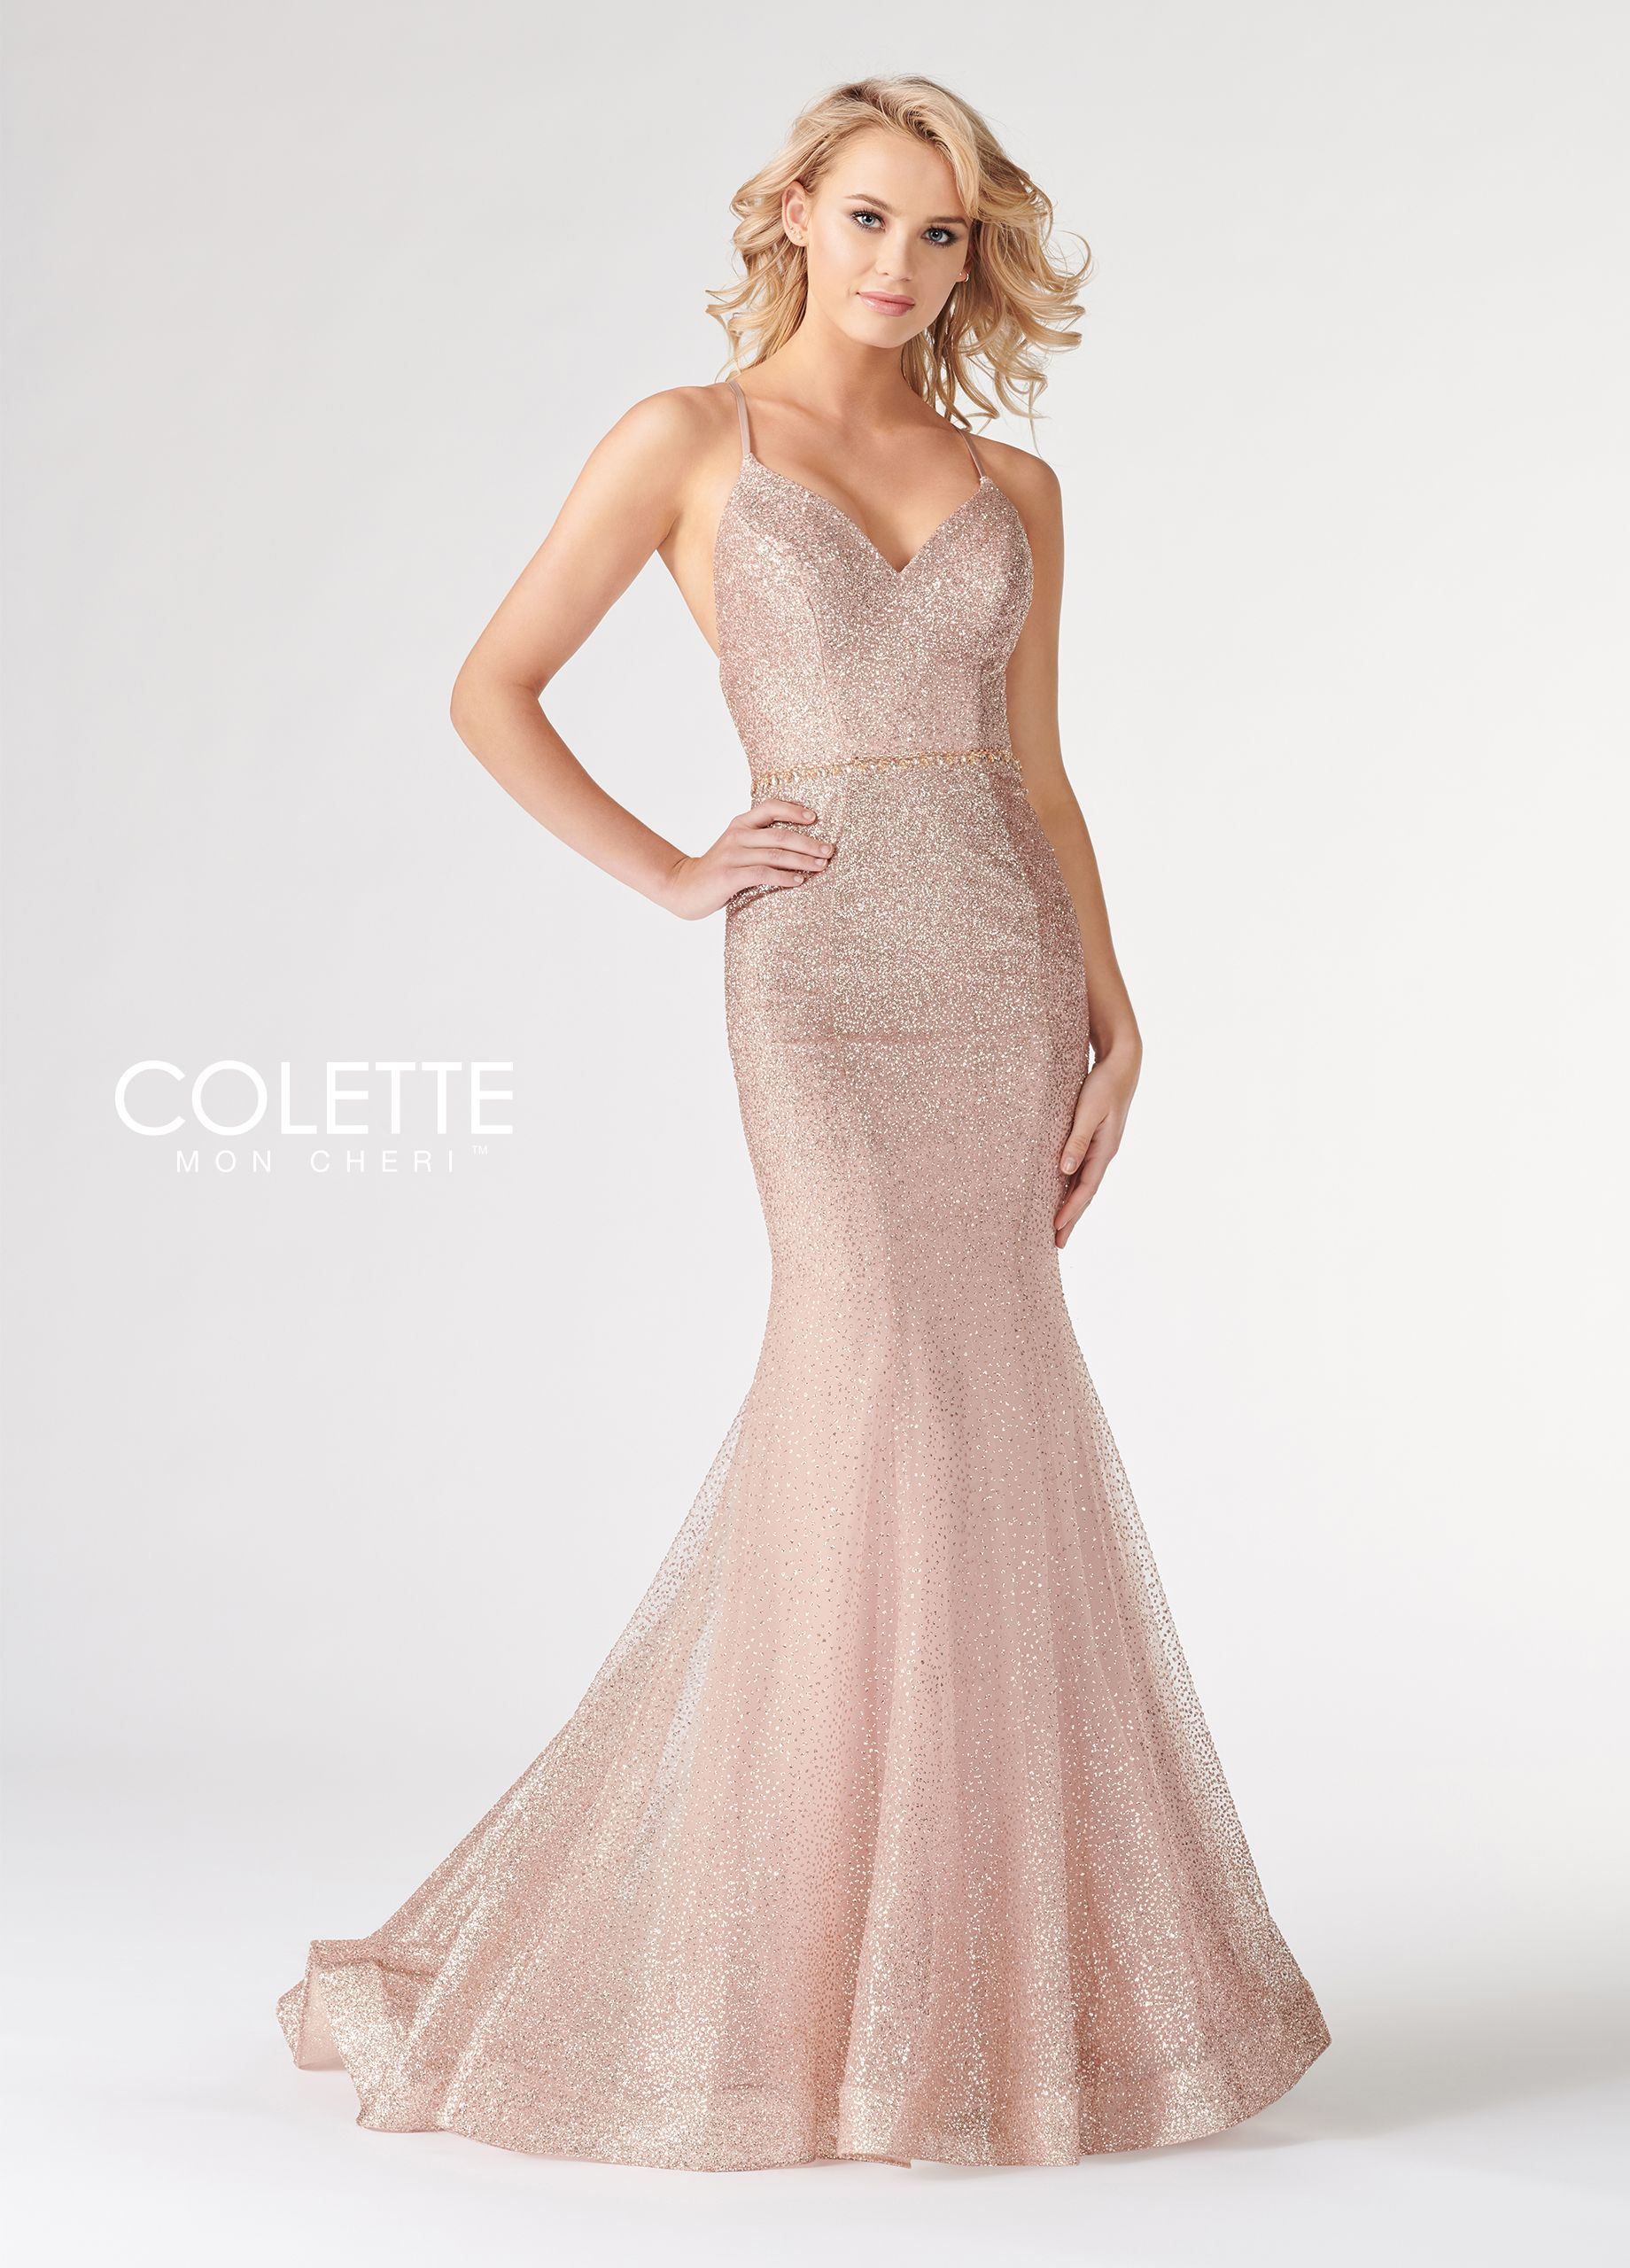 d11a81c7ddbe Colette for Mon Cheri CL19850 - Sleeveless cracked ice tulle fit and flare  gown with v-neck and criss-cross back detail